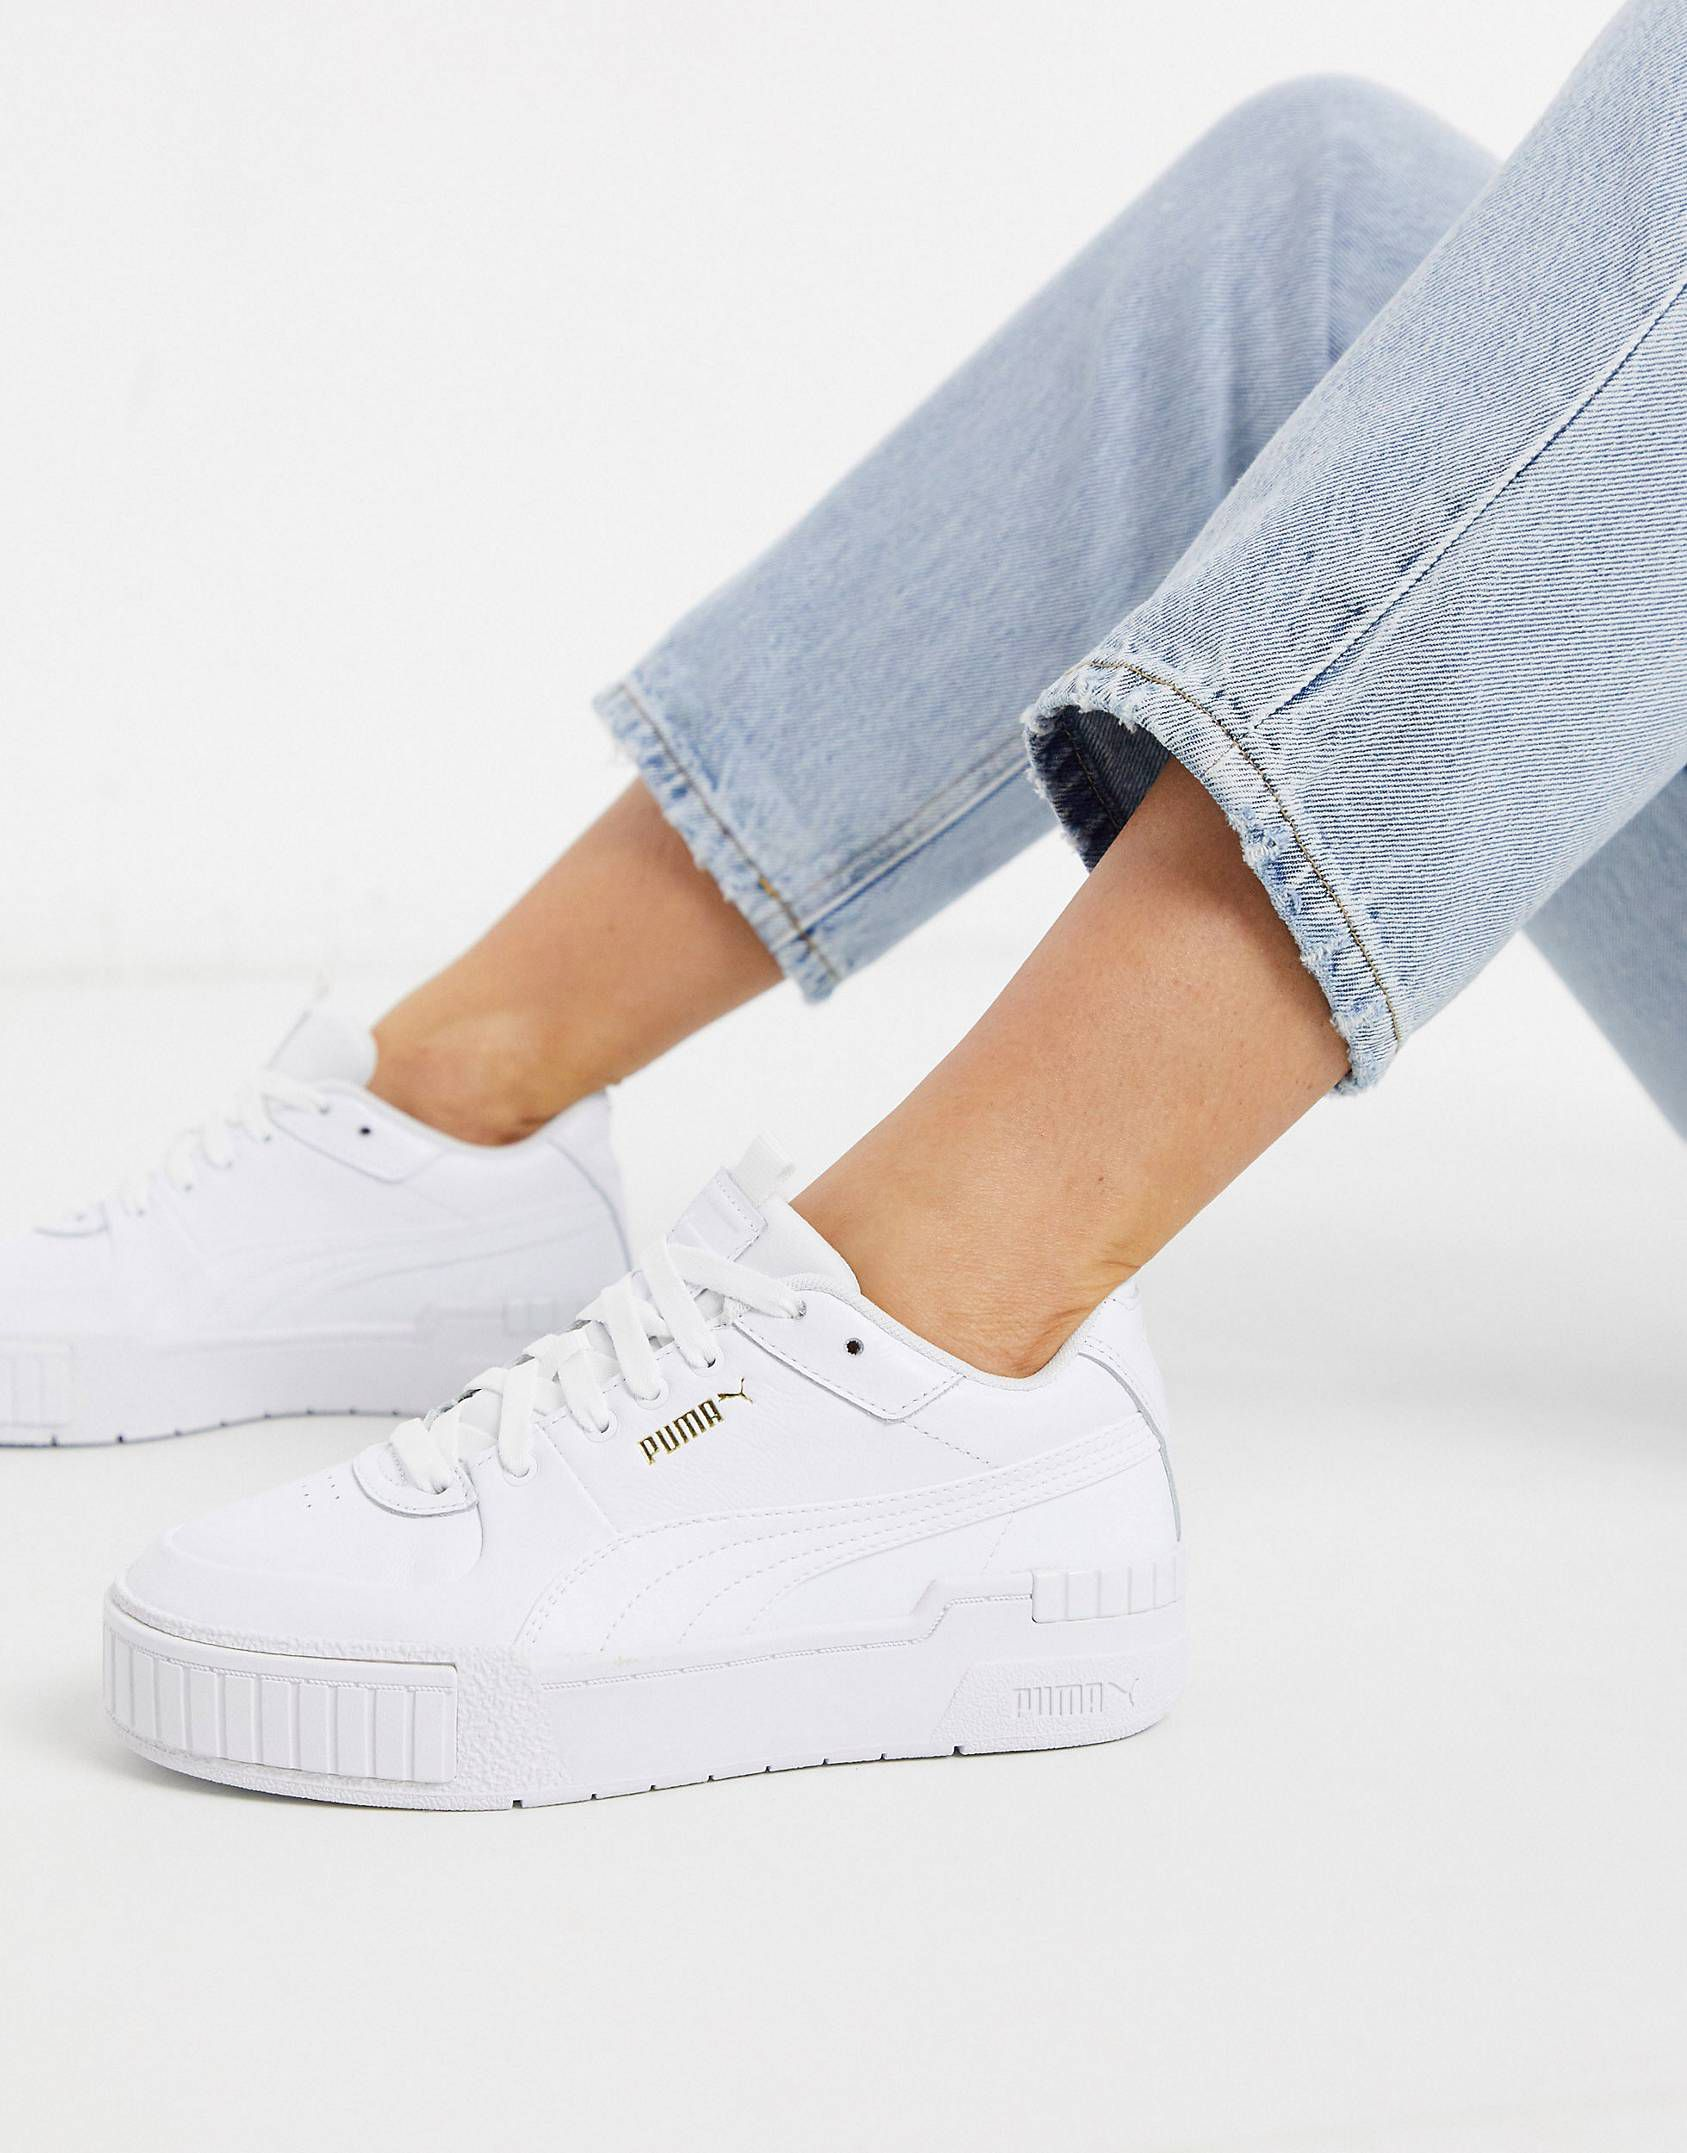 Pin by Maryamopeyem on casual in 2020 Puma shoes women